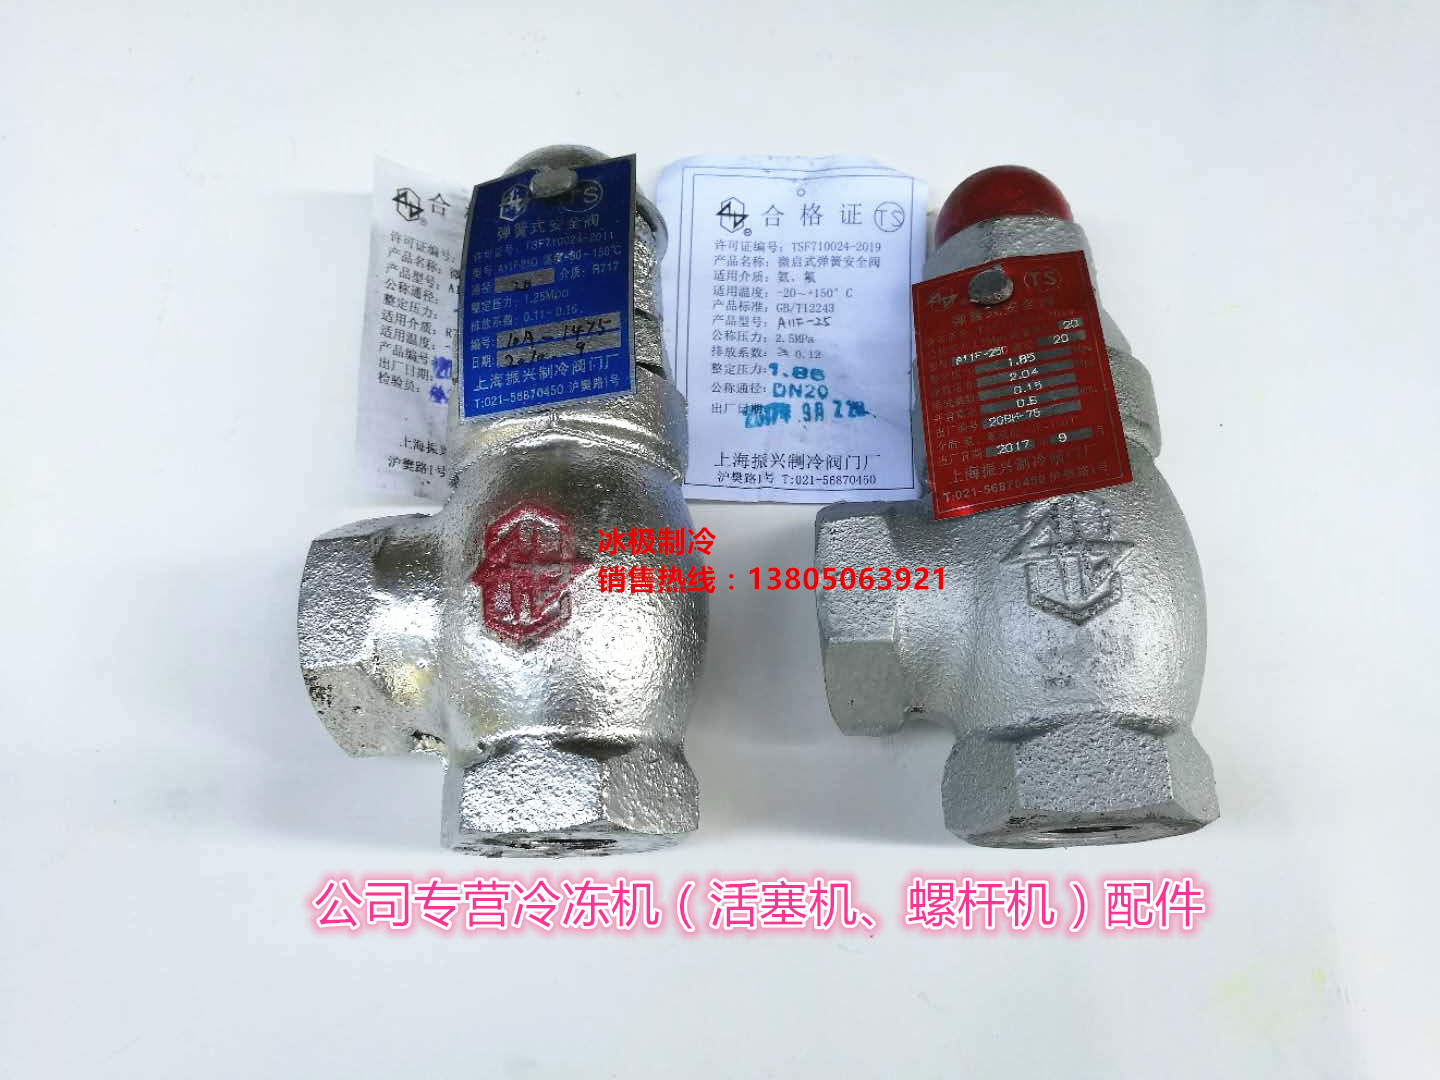 Shanghai Zhenxing refrigeration valve factory spring high and low pressure safety valve DN20 model: A11F-25Q